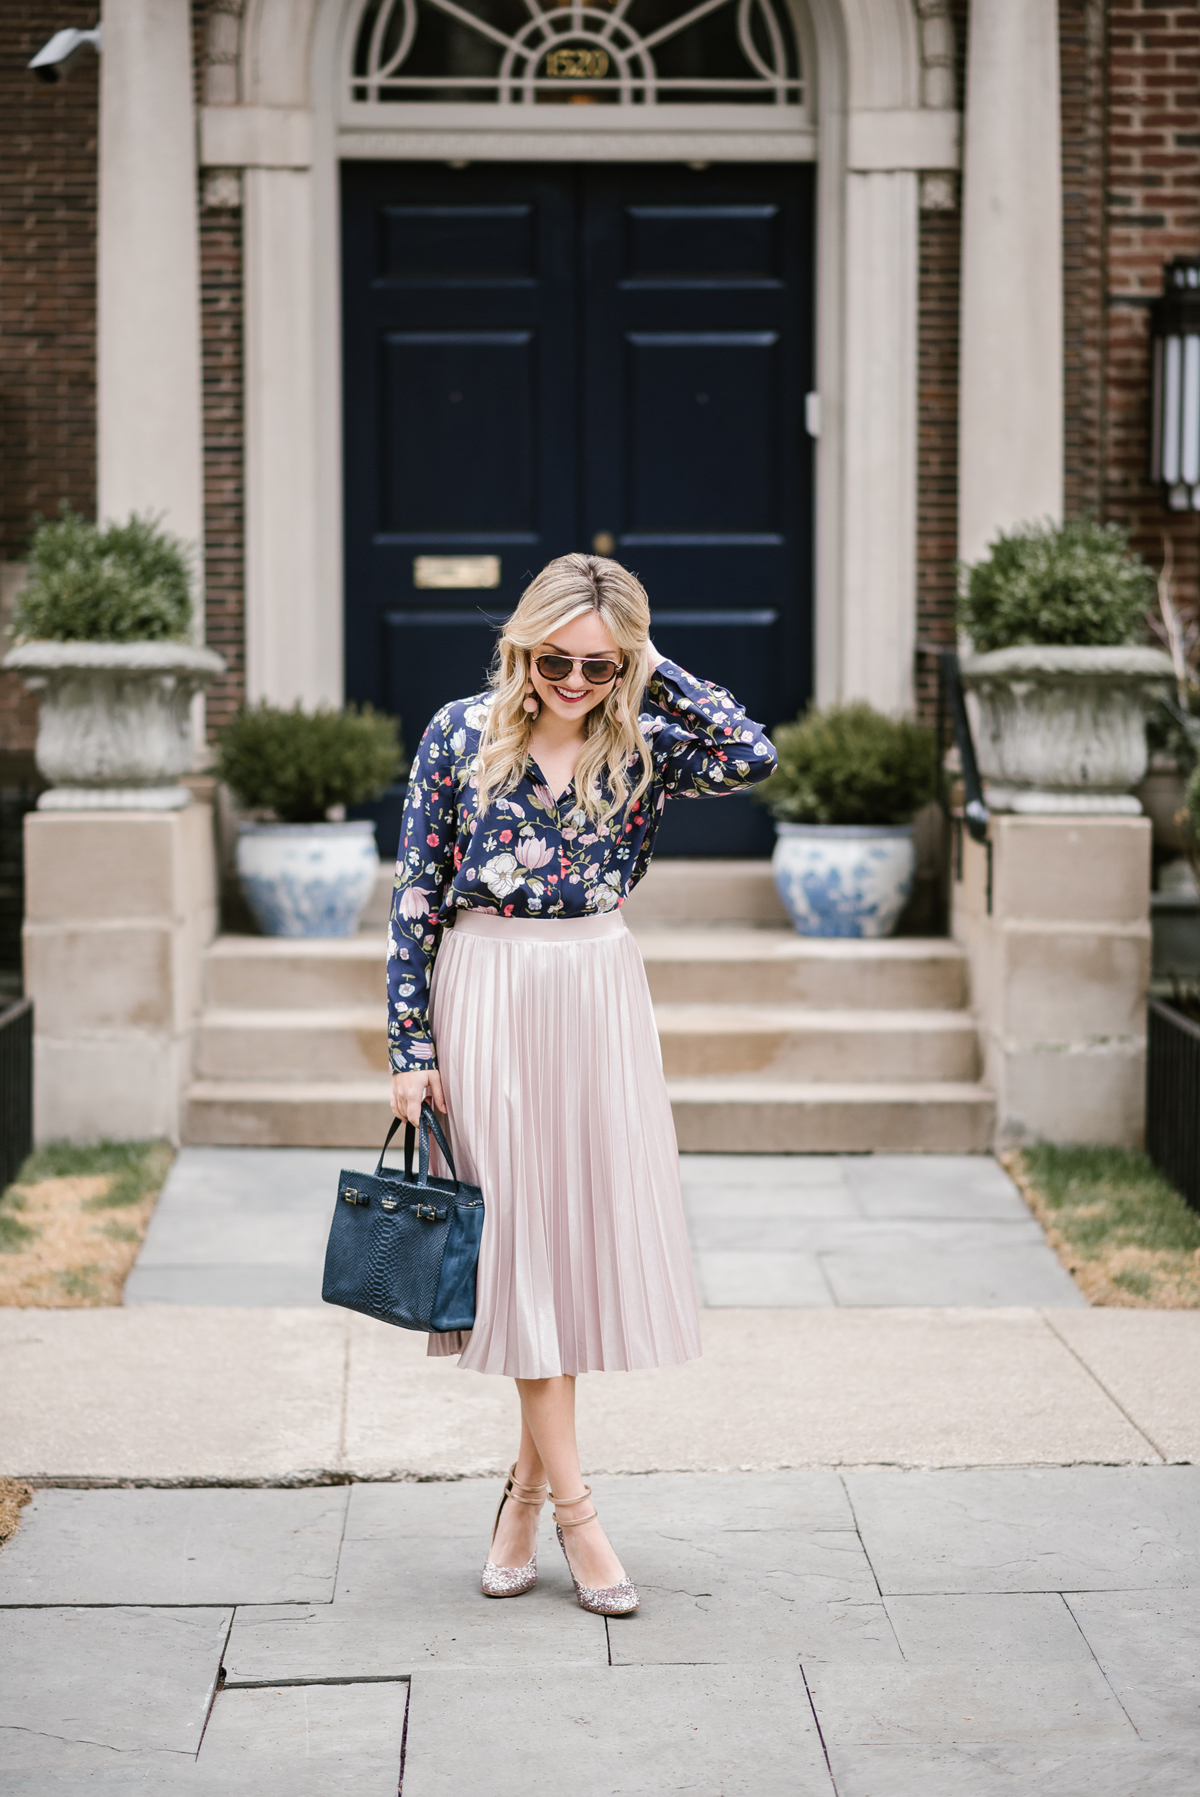 Jessica of Bows & Sequins wearing a navy floral Rebecca Taylor blouse, Rachel Roy pleated midi skirt, Kate Spade blush pink glitter pumps, and Celine tortoise aviator sunglasses.